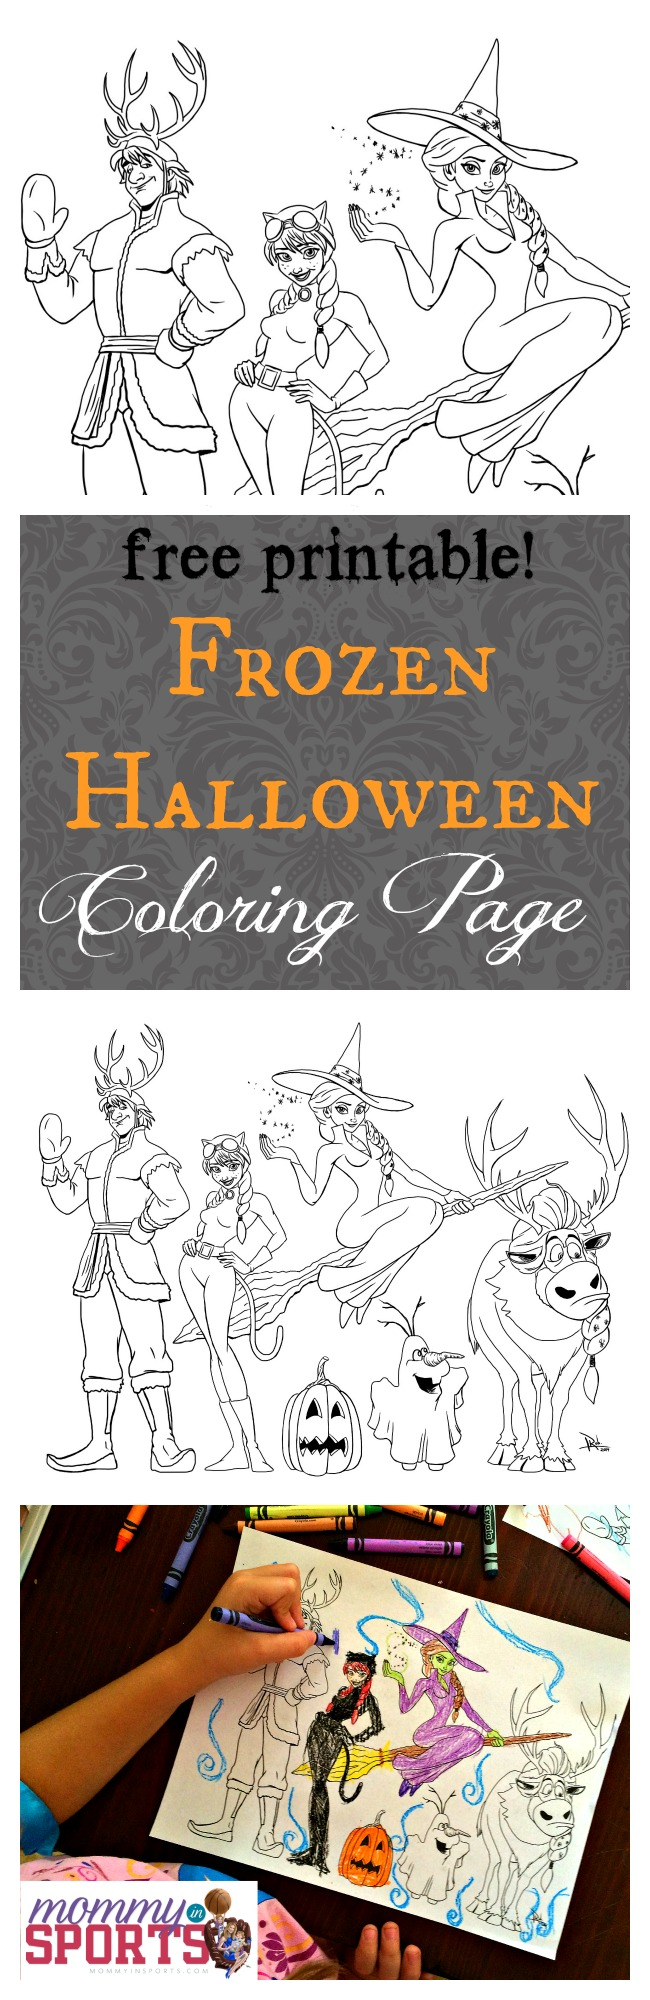 Frozen halloween coloring page mommy sports, i love you mommy coloring pages